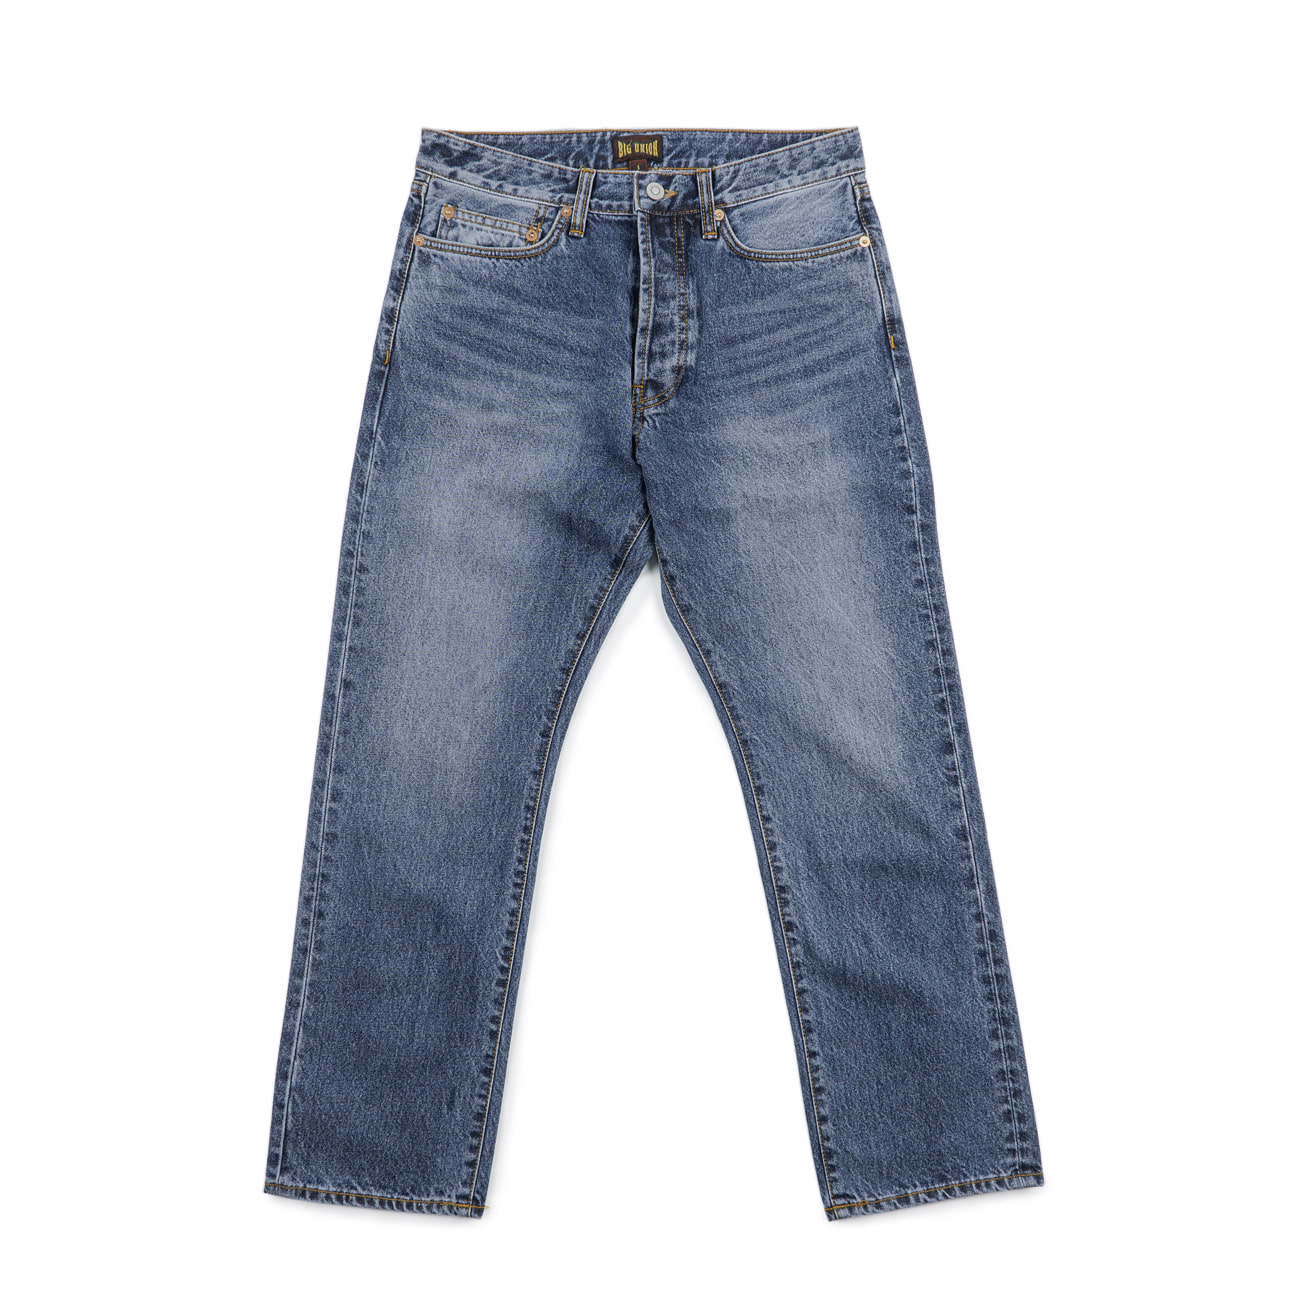 13oz Japanese Denim Used Wash 2 Indigo FW NEW